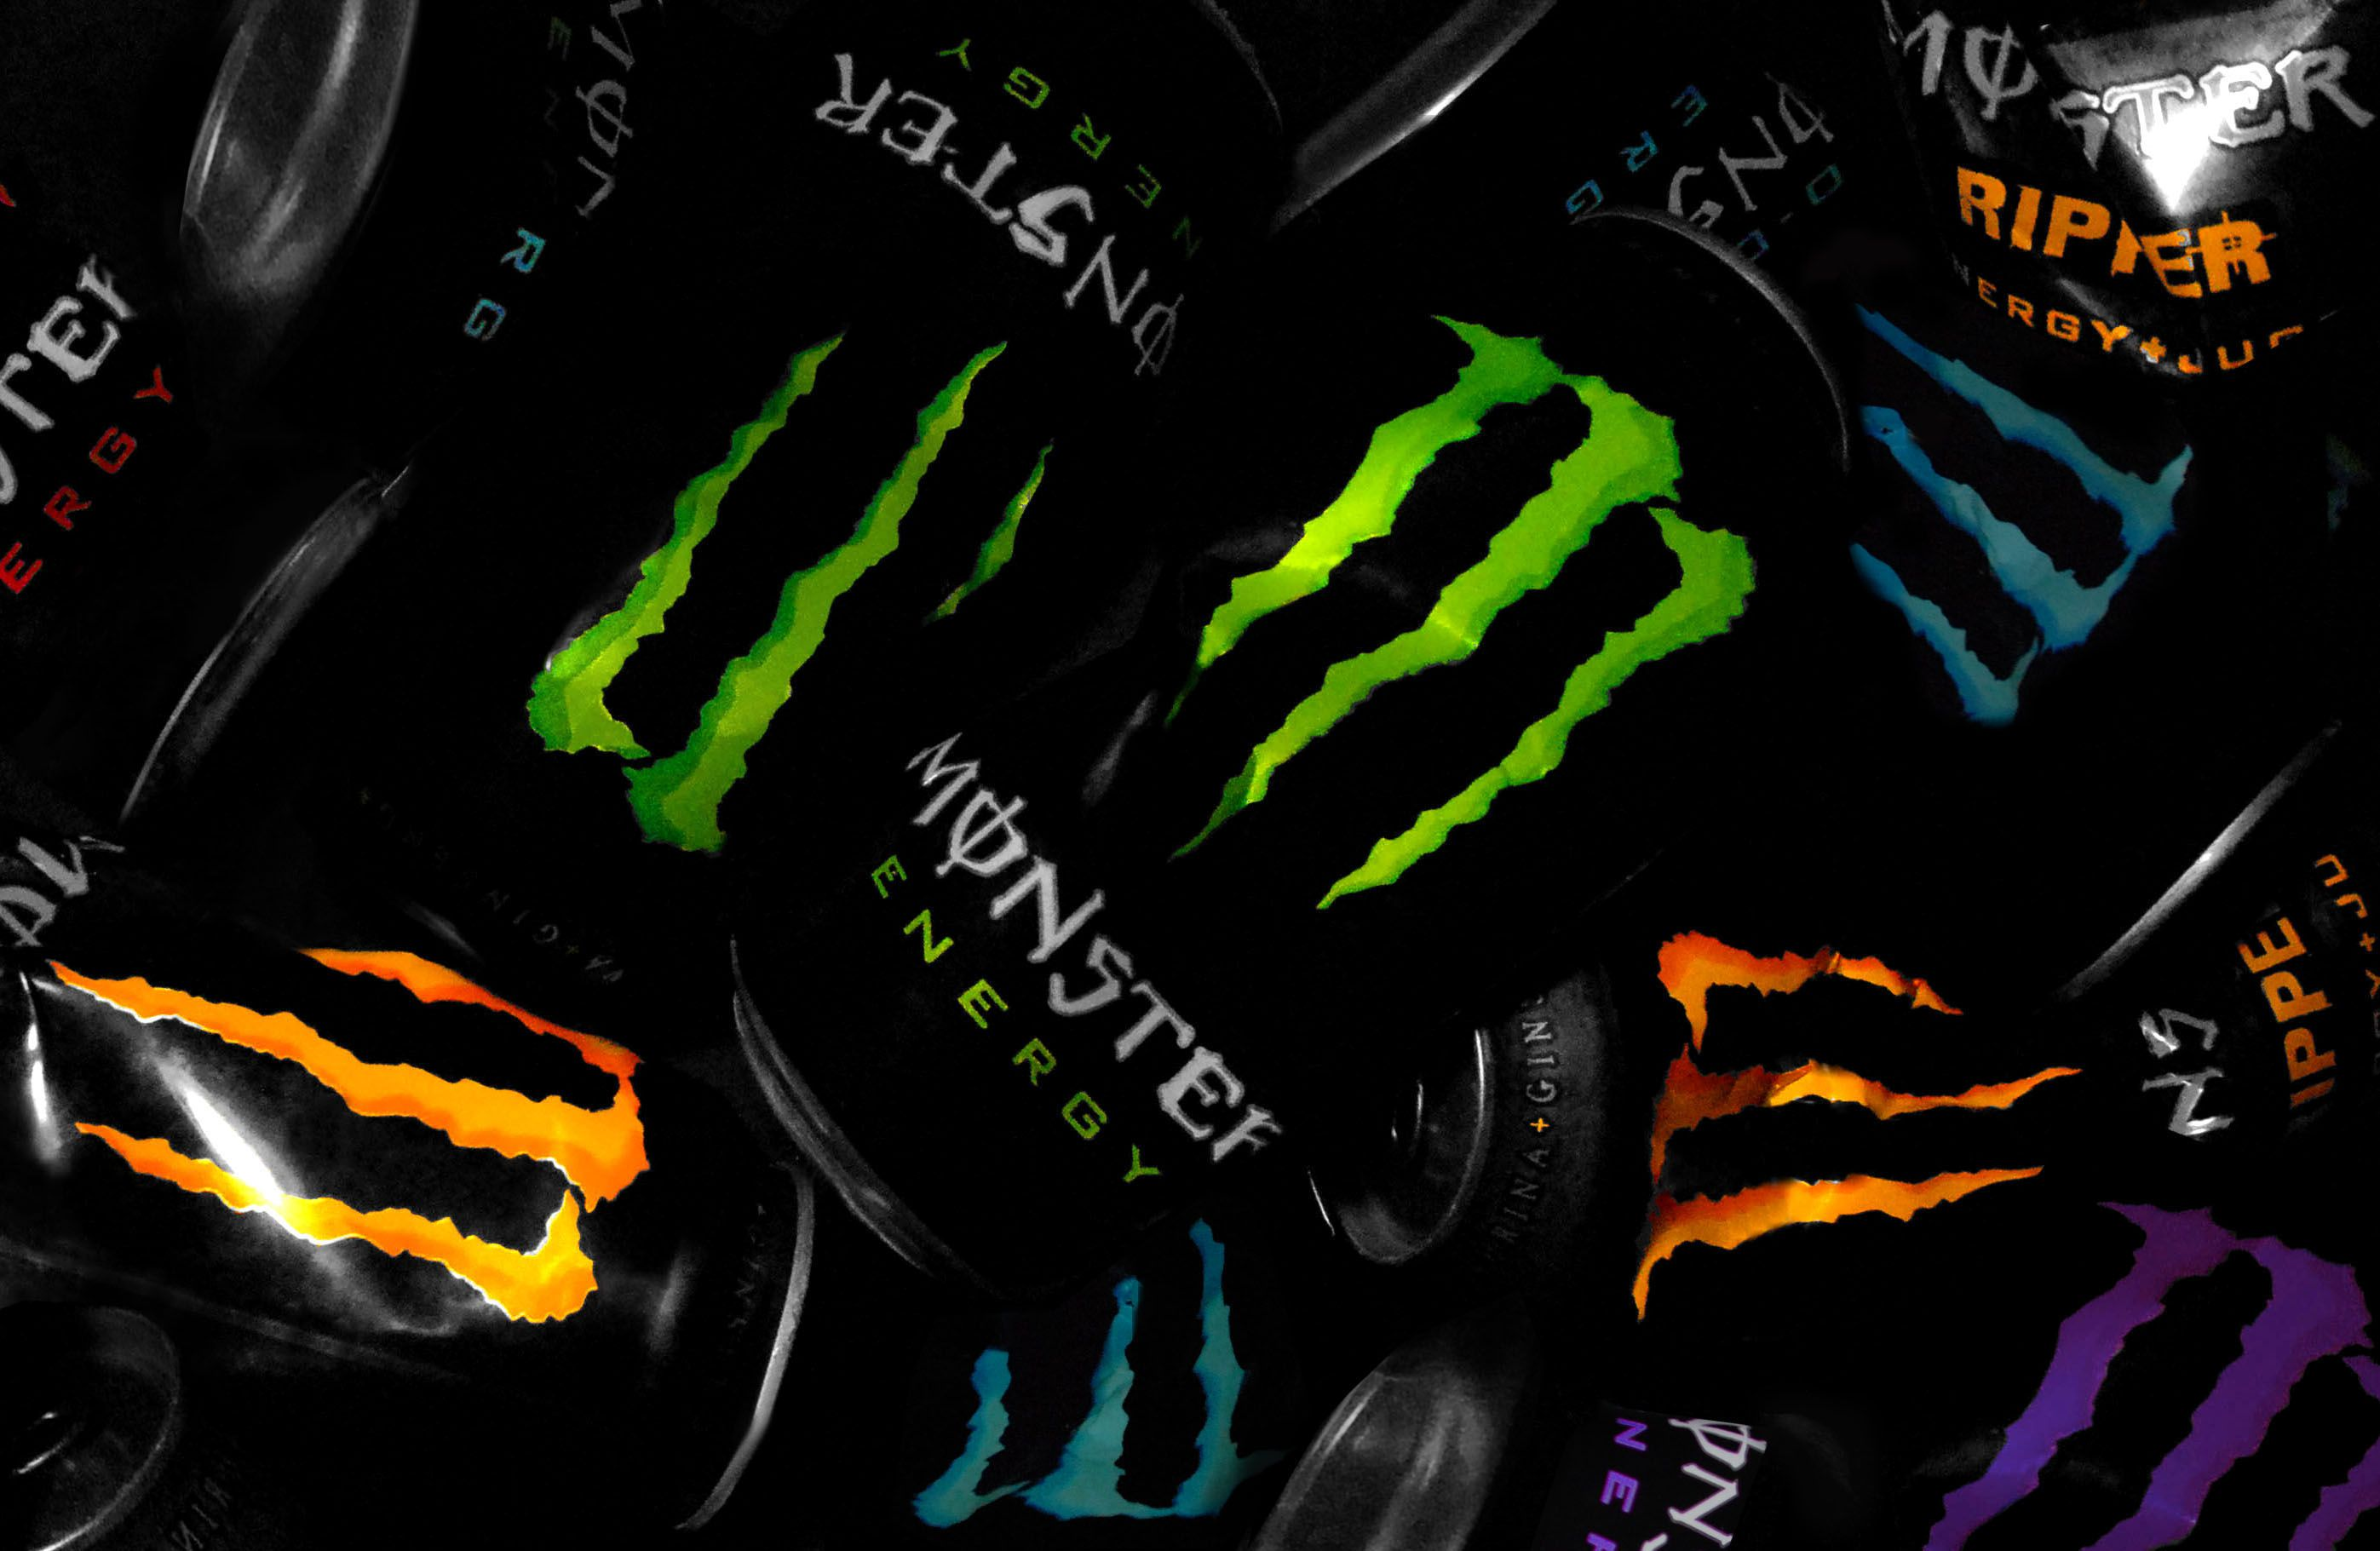 2794x1821 Monster Energy Wallpapers, Amazing 48 Wallpapers of Monster Energy ...